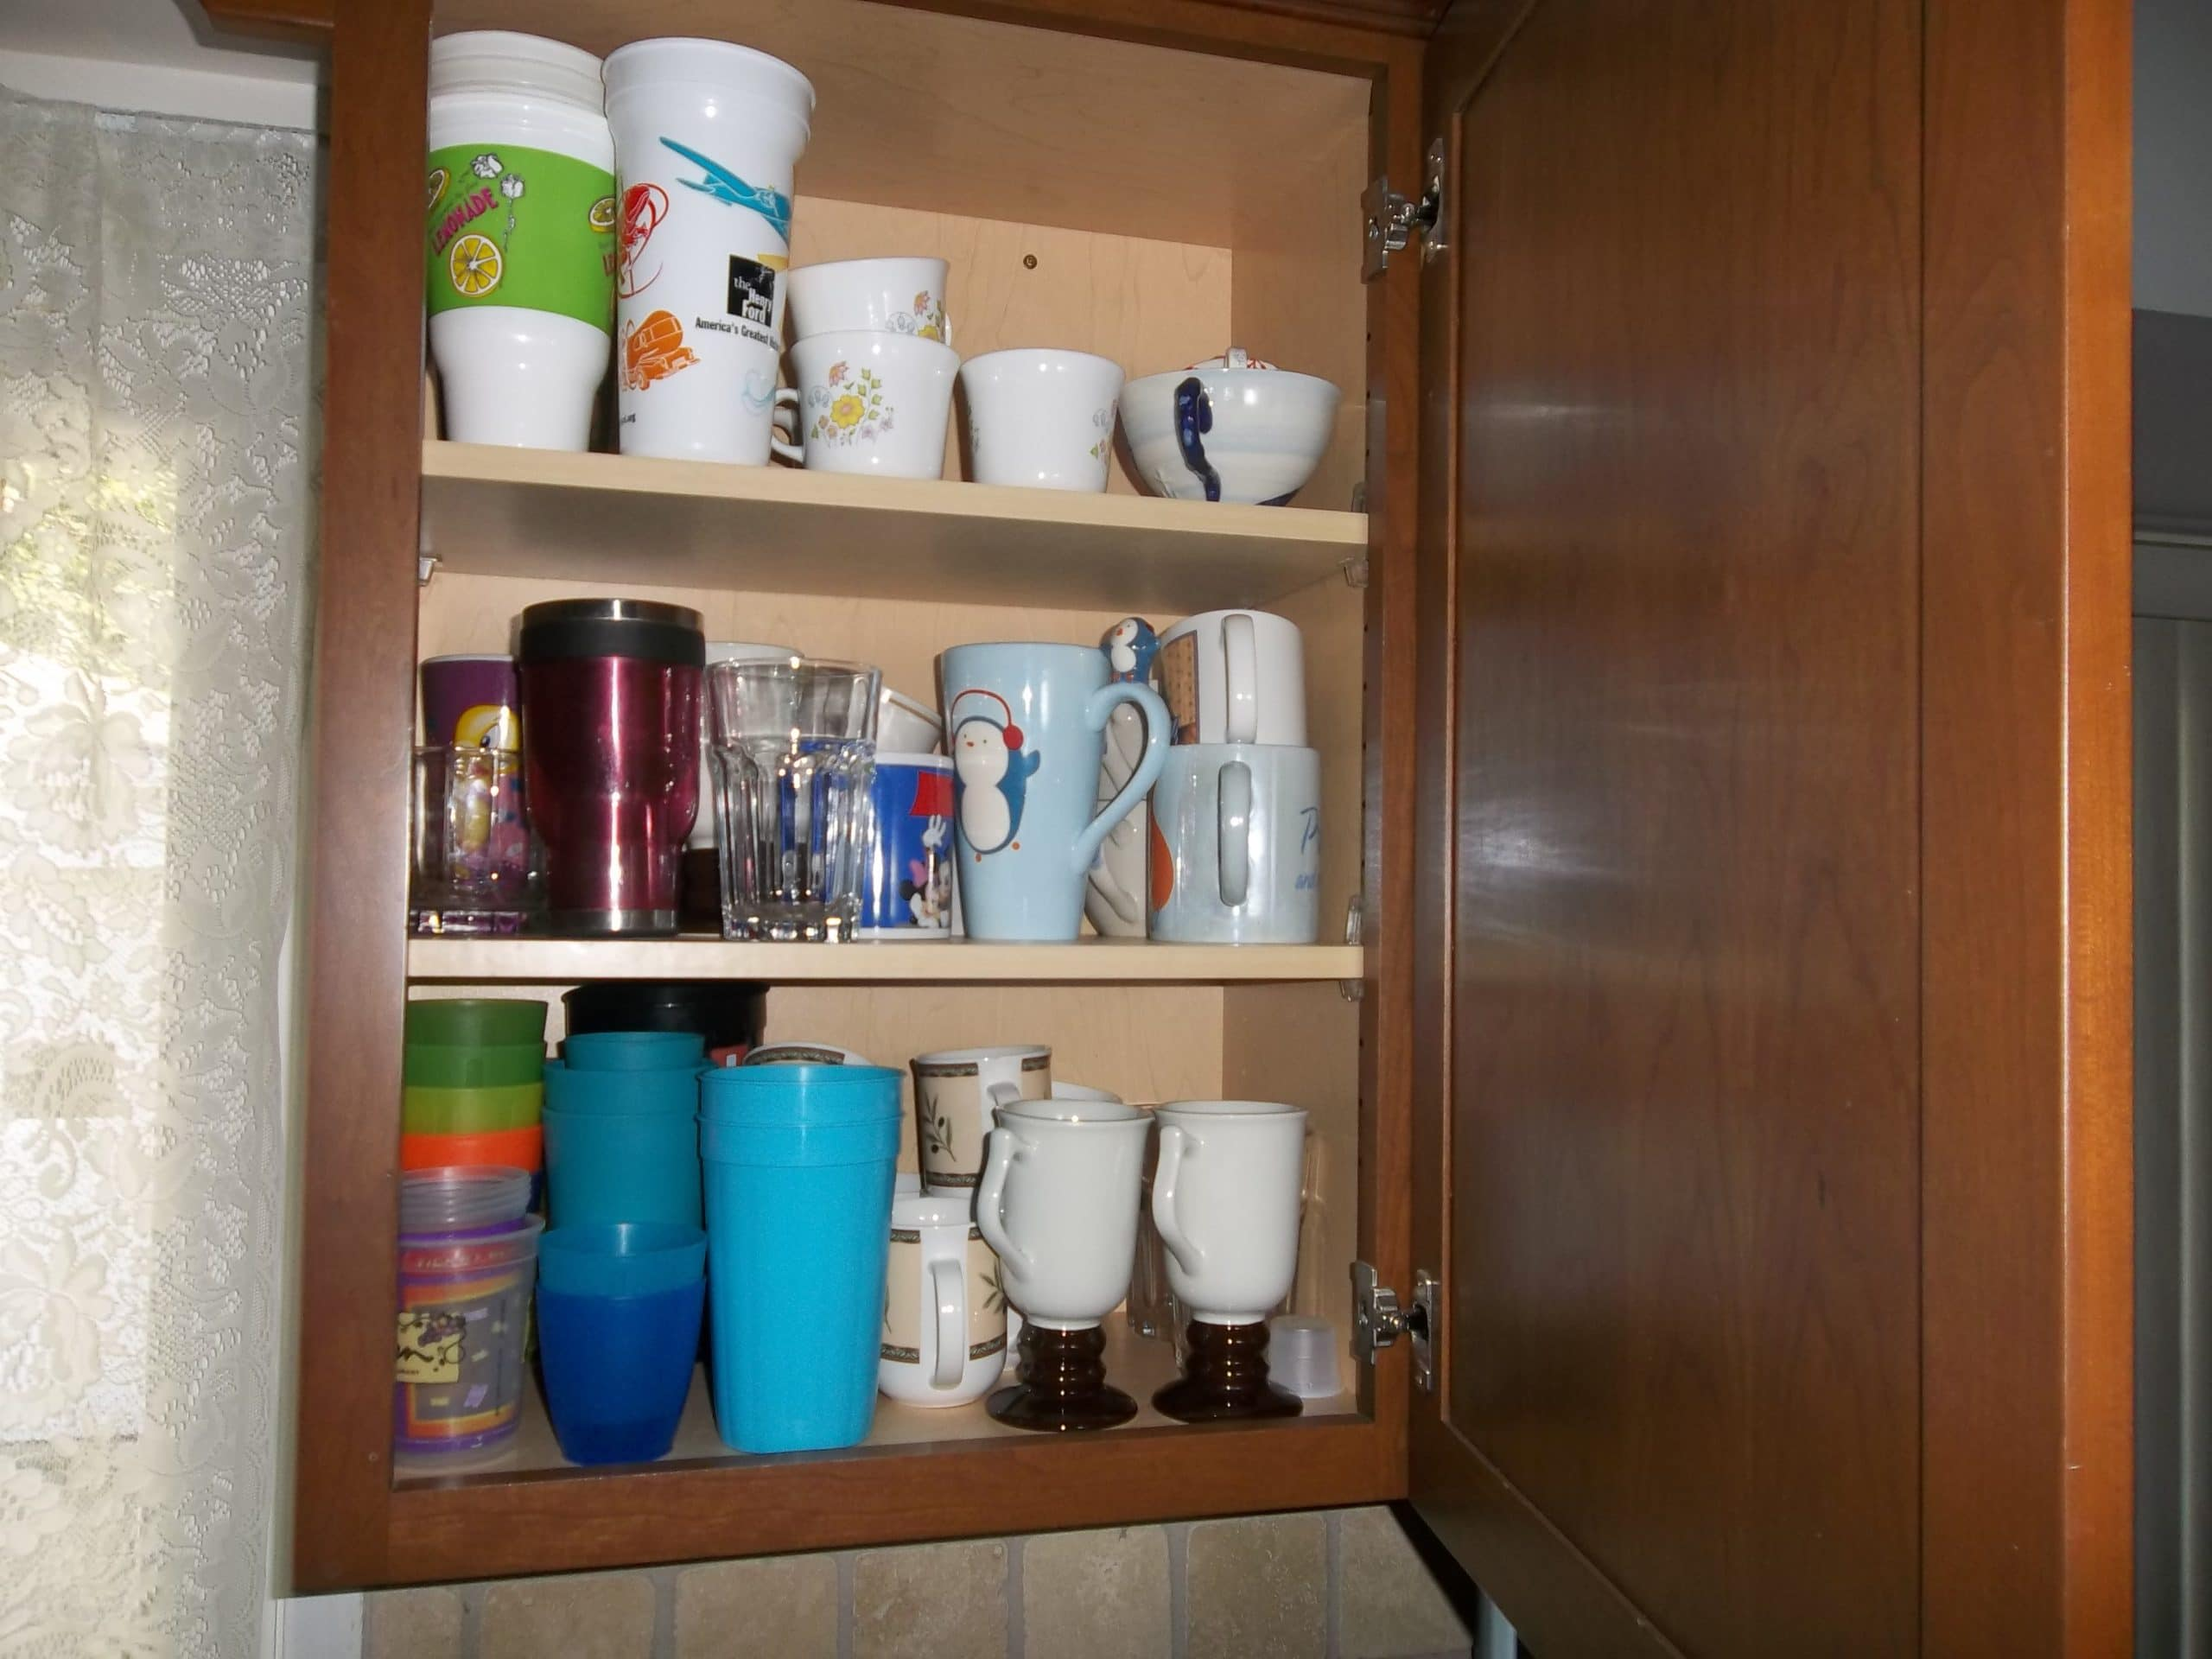 Organize Kitchen Cabinets How We Got Rid of 99 Dishes ⋆ YBKitchen